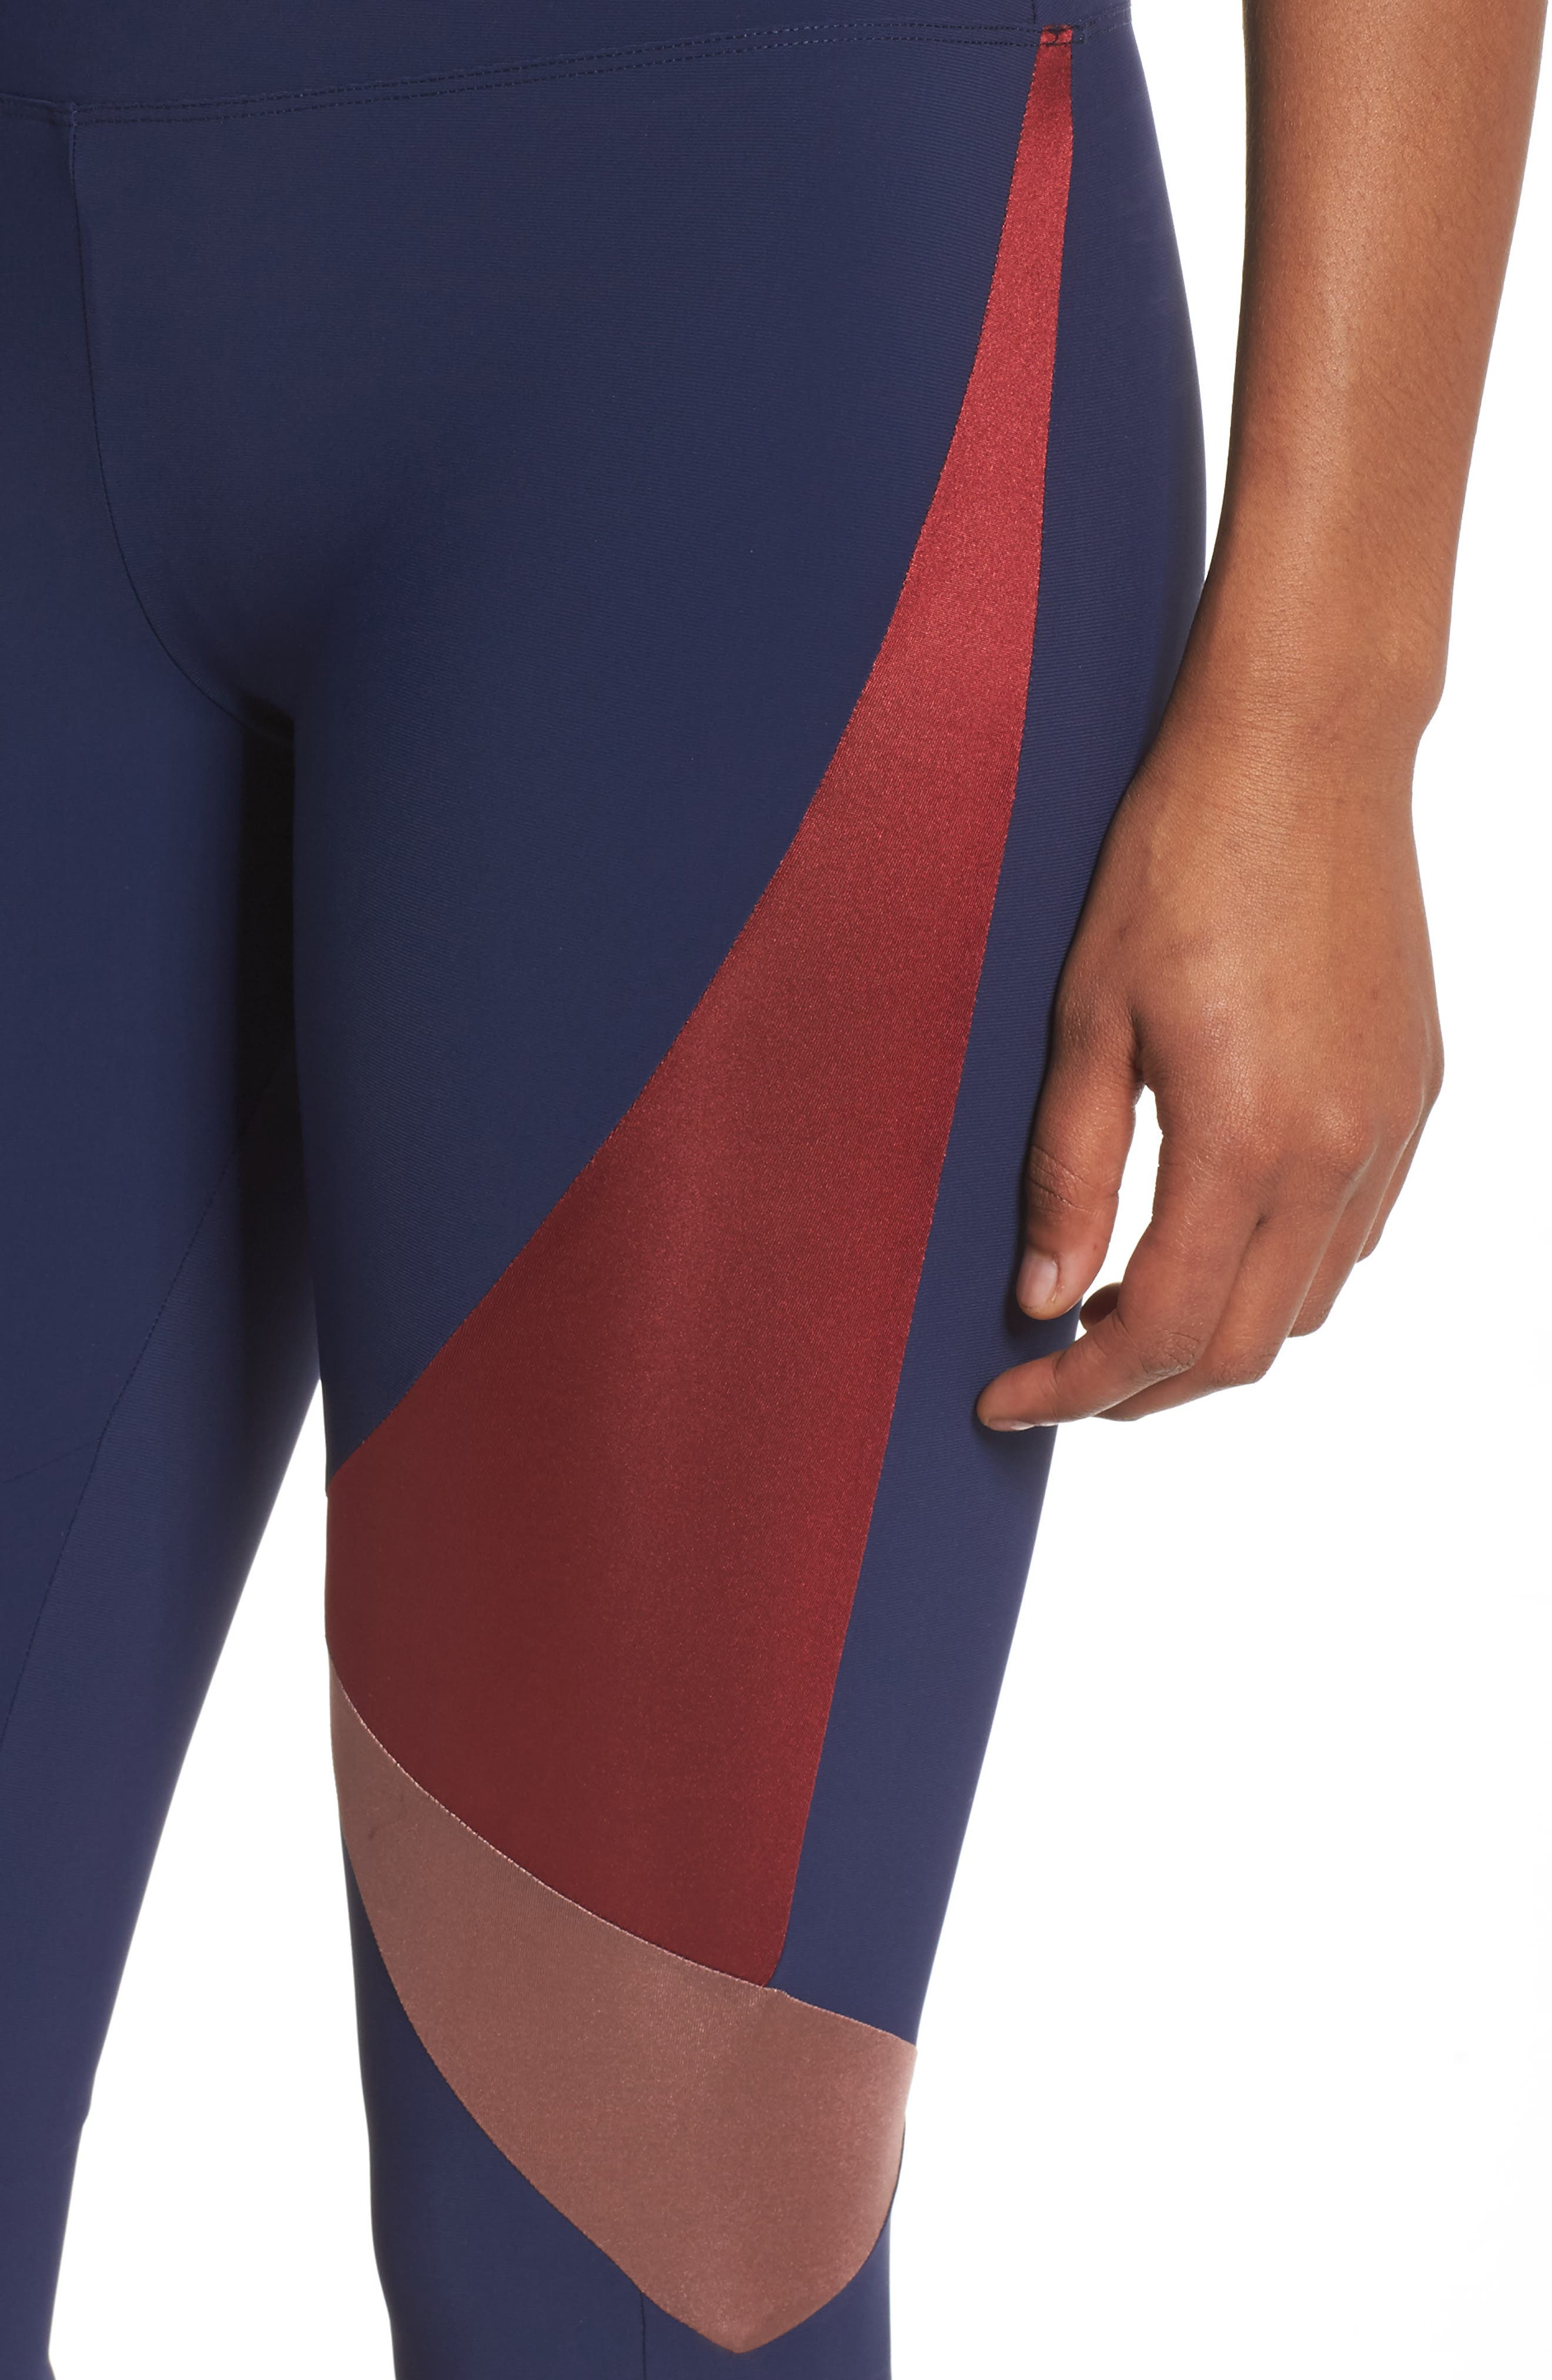 BoomBoom Athletica Compression Leggings,                             Alternate thumbnail 4, color,                             Navy/Oxblood/Rose Gold